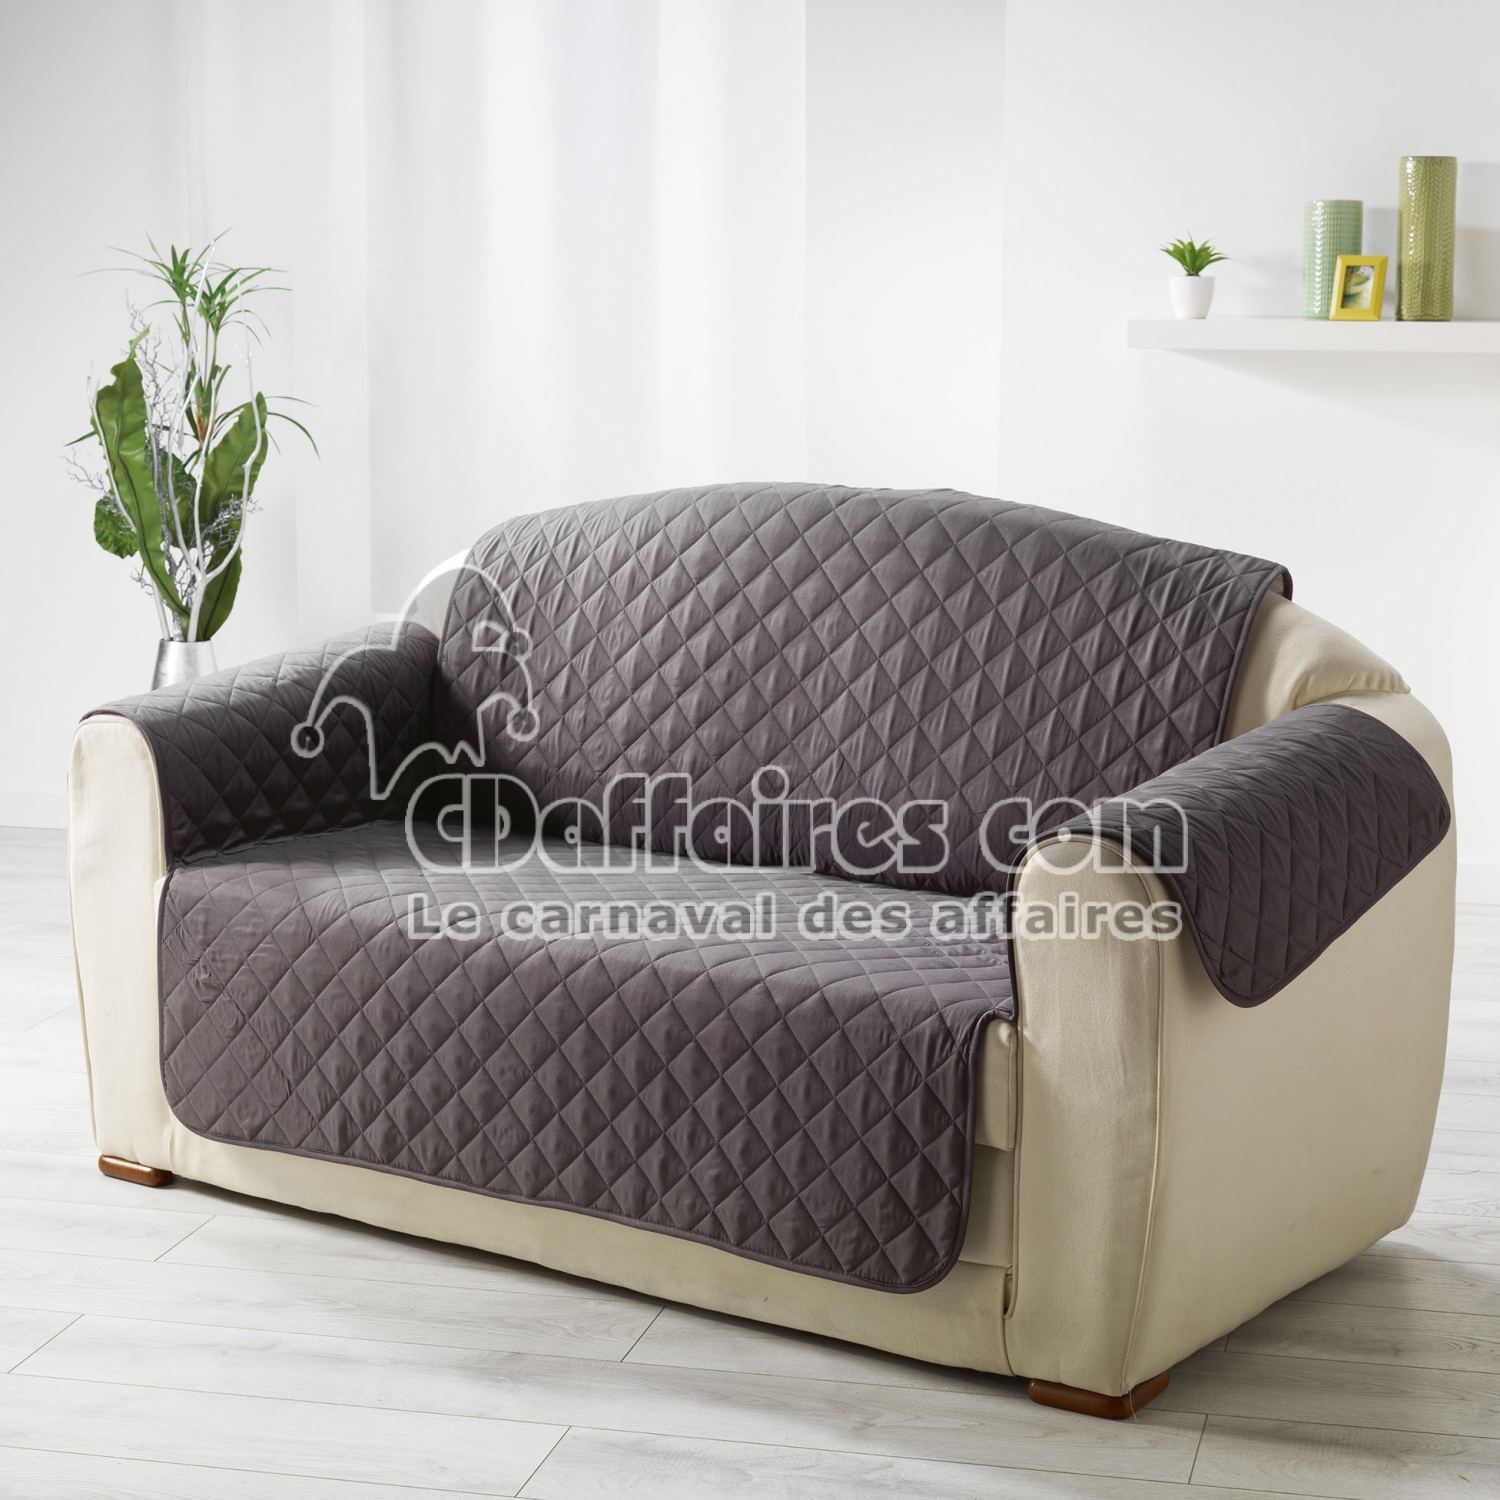 protege canape matelasse 223 x 179 cm microfibre unie club anthracite cdaffaires. Black Bedroom Furniture Sets. Home Design Ideas